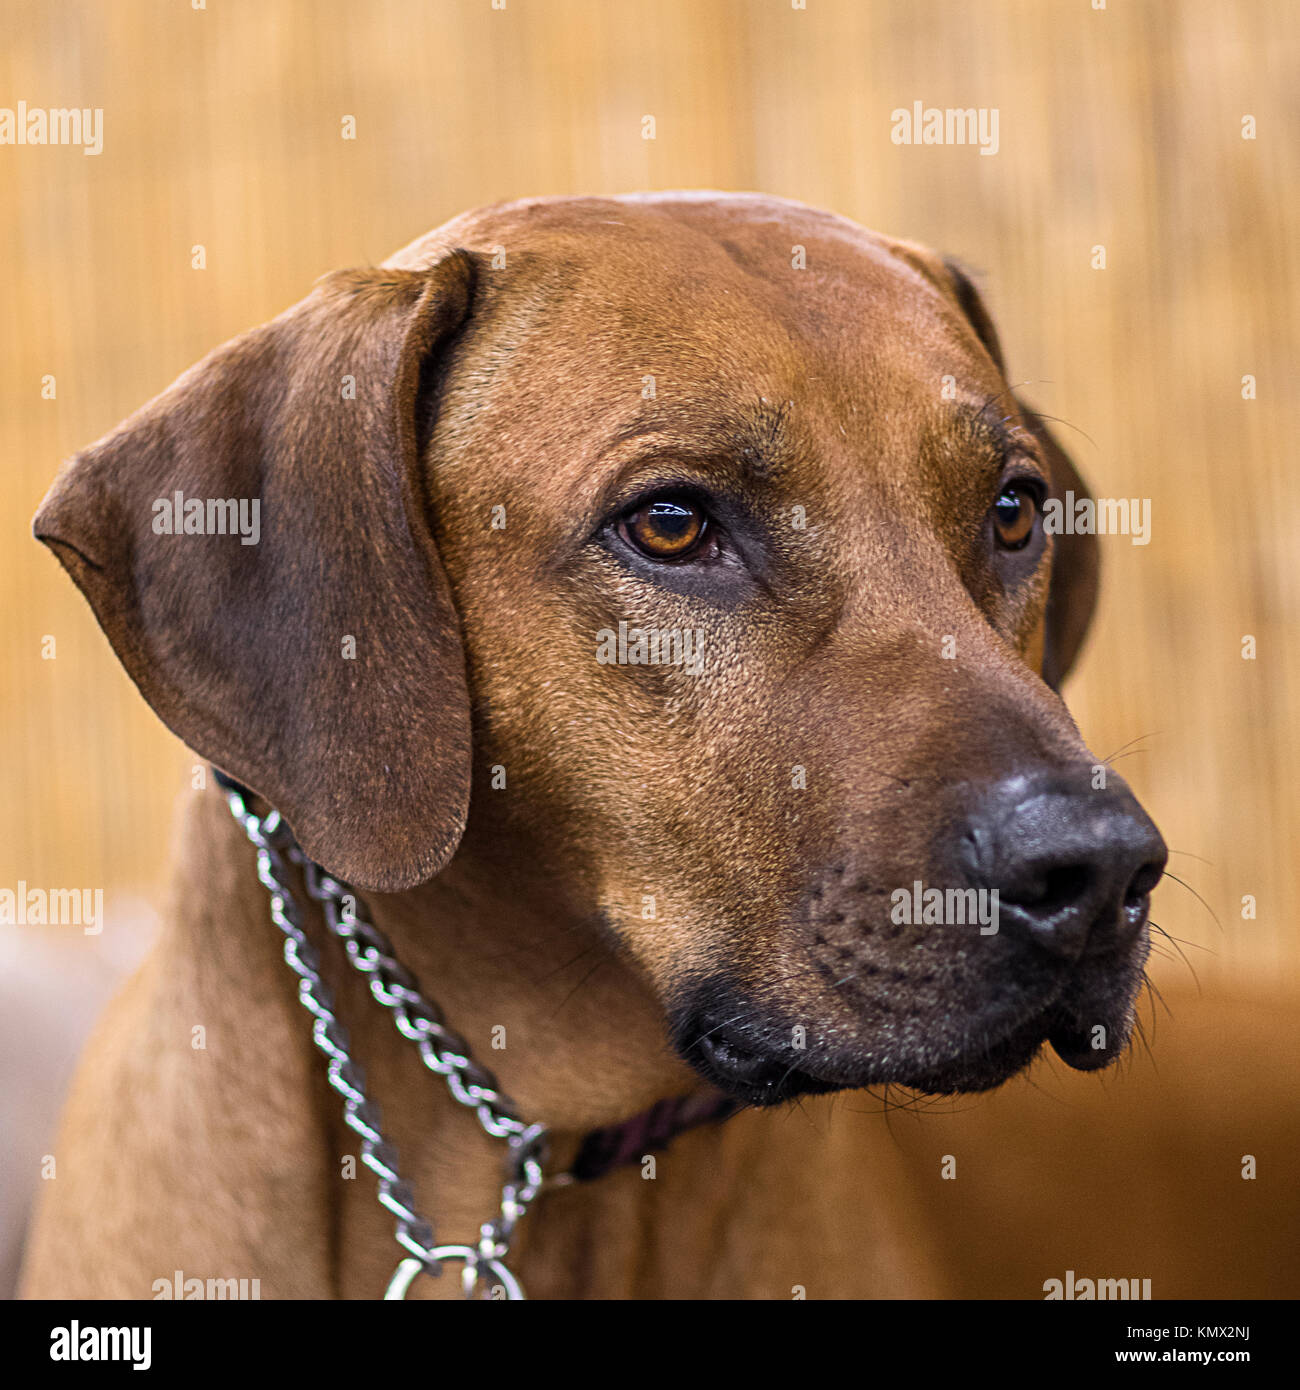 Rhodesian Ridgeback, African Lion Hound, Black Nose, Show Dog Portrait in Front of a Blurry Bamboo Backdrop - Stock Image